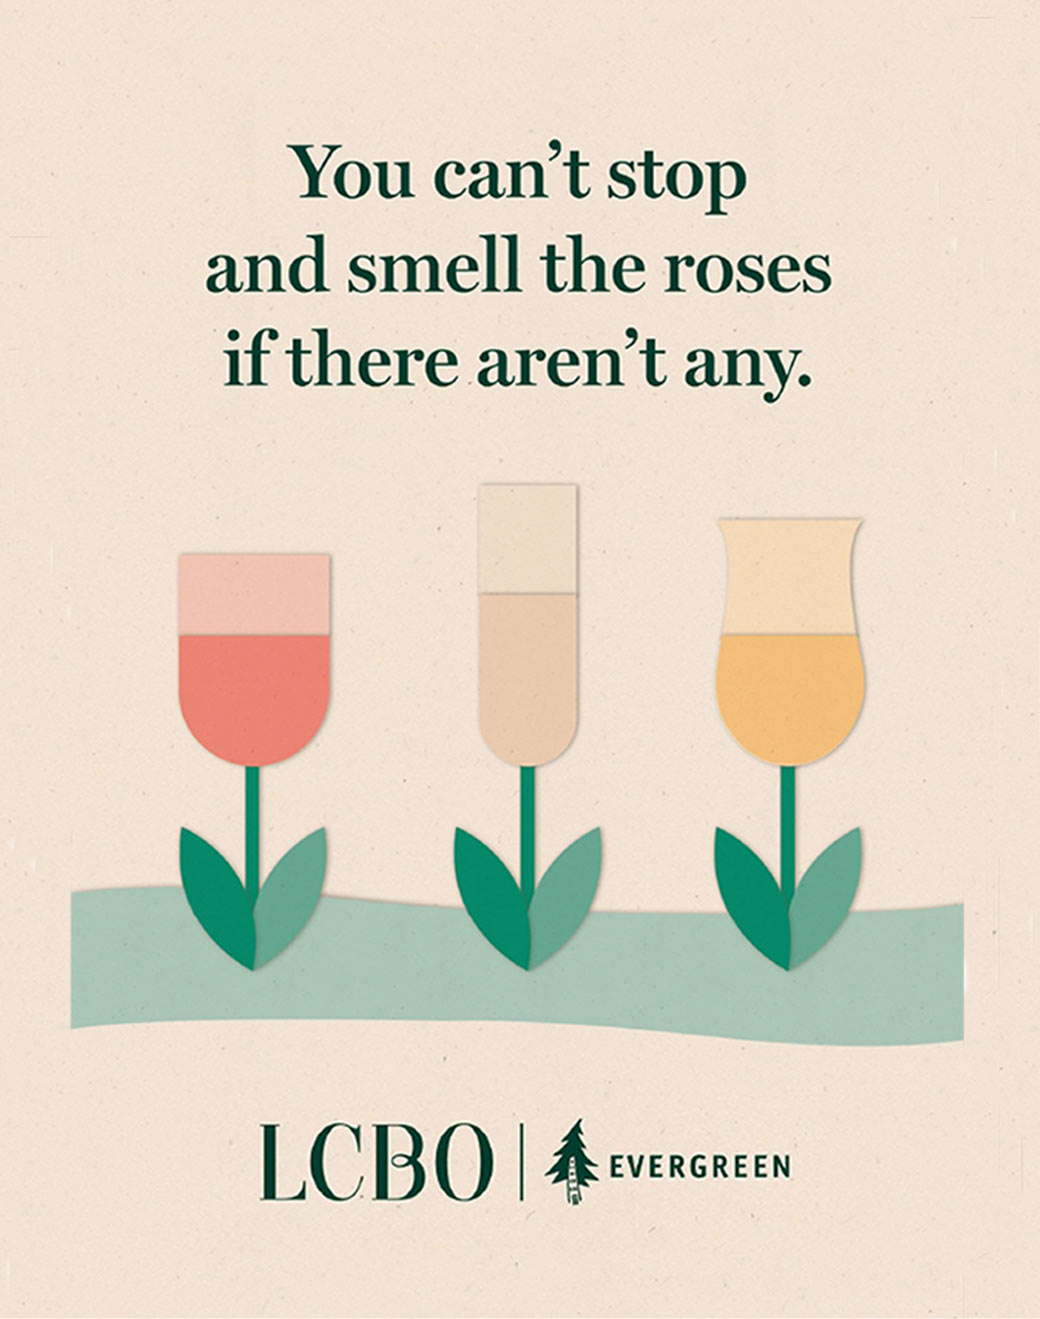 You can't stop and smell the roses if there aren't any. LCBO, Evergreen